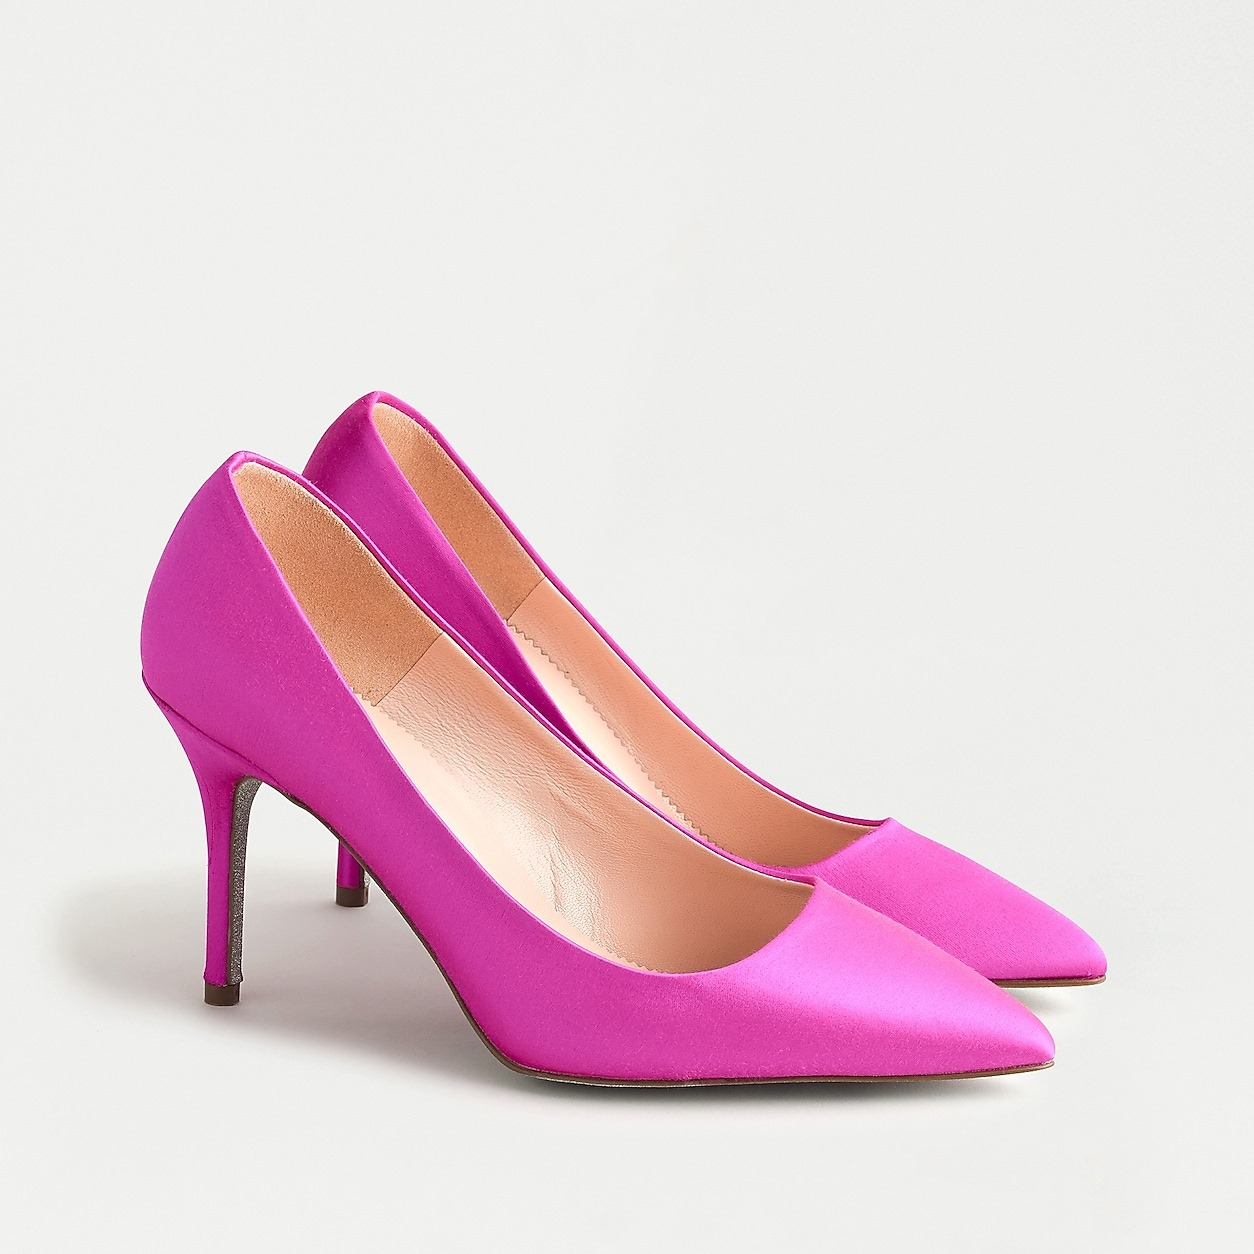 Elsie Pumps In Satin With Glitter Sole